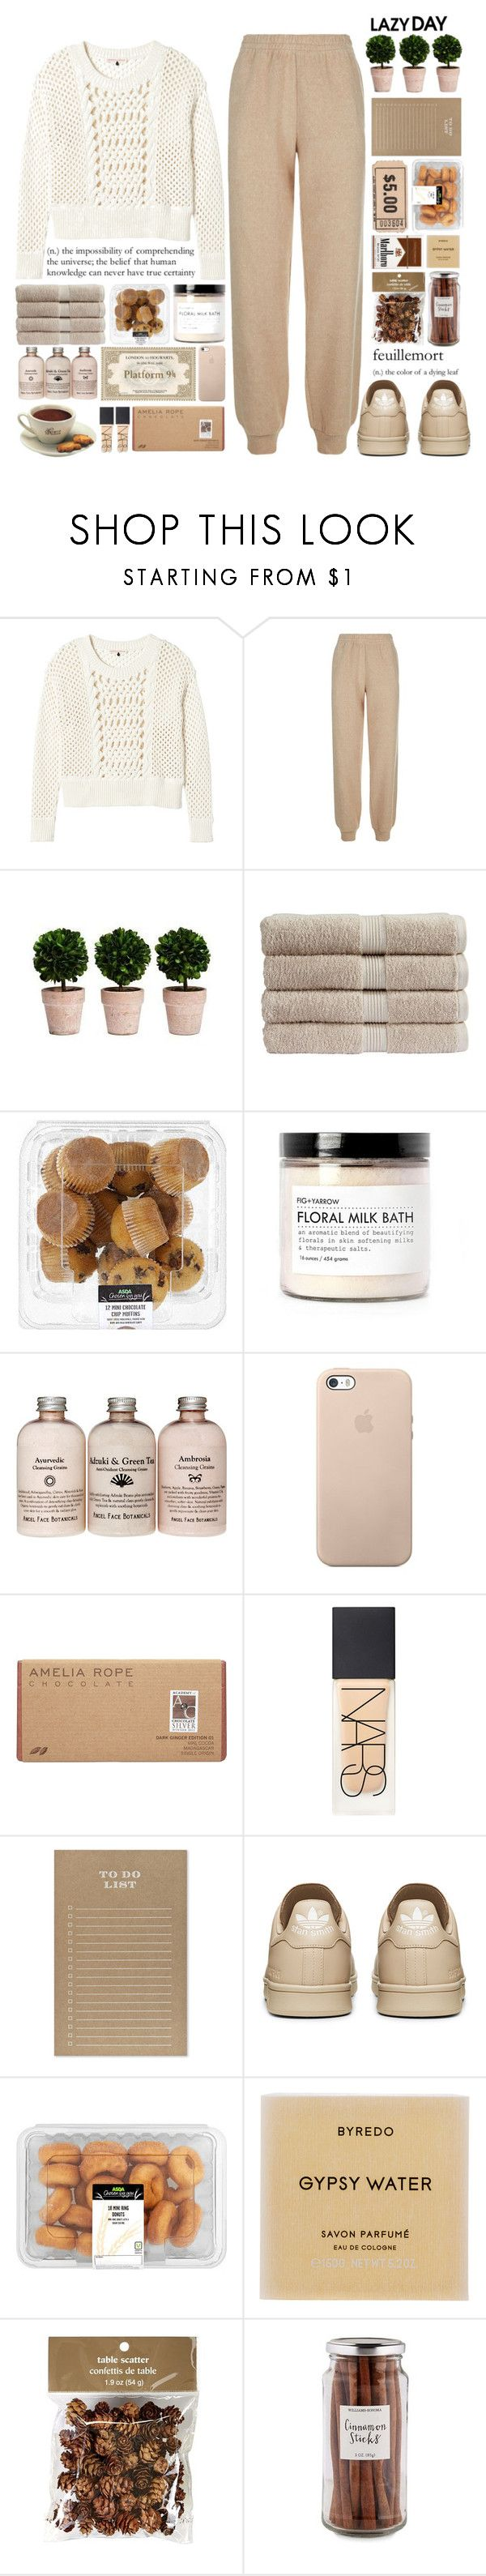 """""""And if she feels my traces in your hair I'm sorry lord but I don't really care"""" by one-styles ❤ liked on Polyvore featuring Rebecca Taylor, See by Chloé, Christy, Fig+Yarrow, Amelia Rose, NARS Cosmetics, Sugar Paper, Byredo, Pier 1 Imports and Williams-Sonoma"""